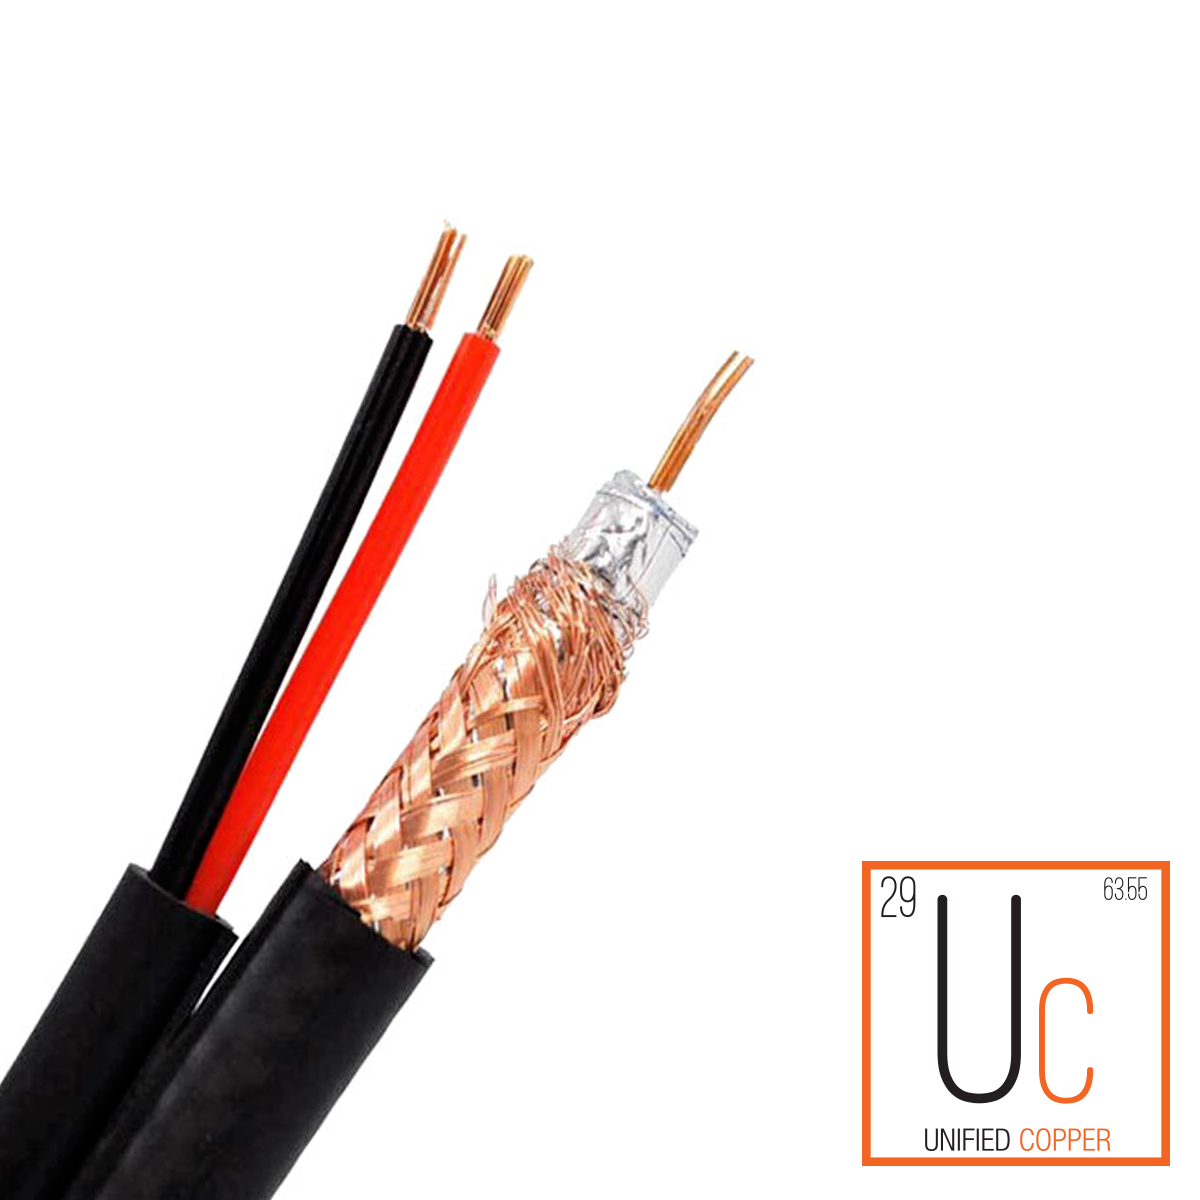 Uc Rgpwbk500 Sm Copper Wiring Devices